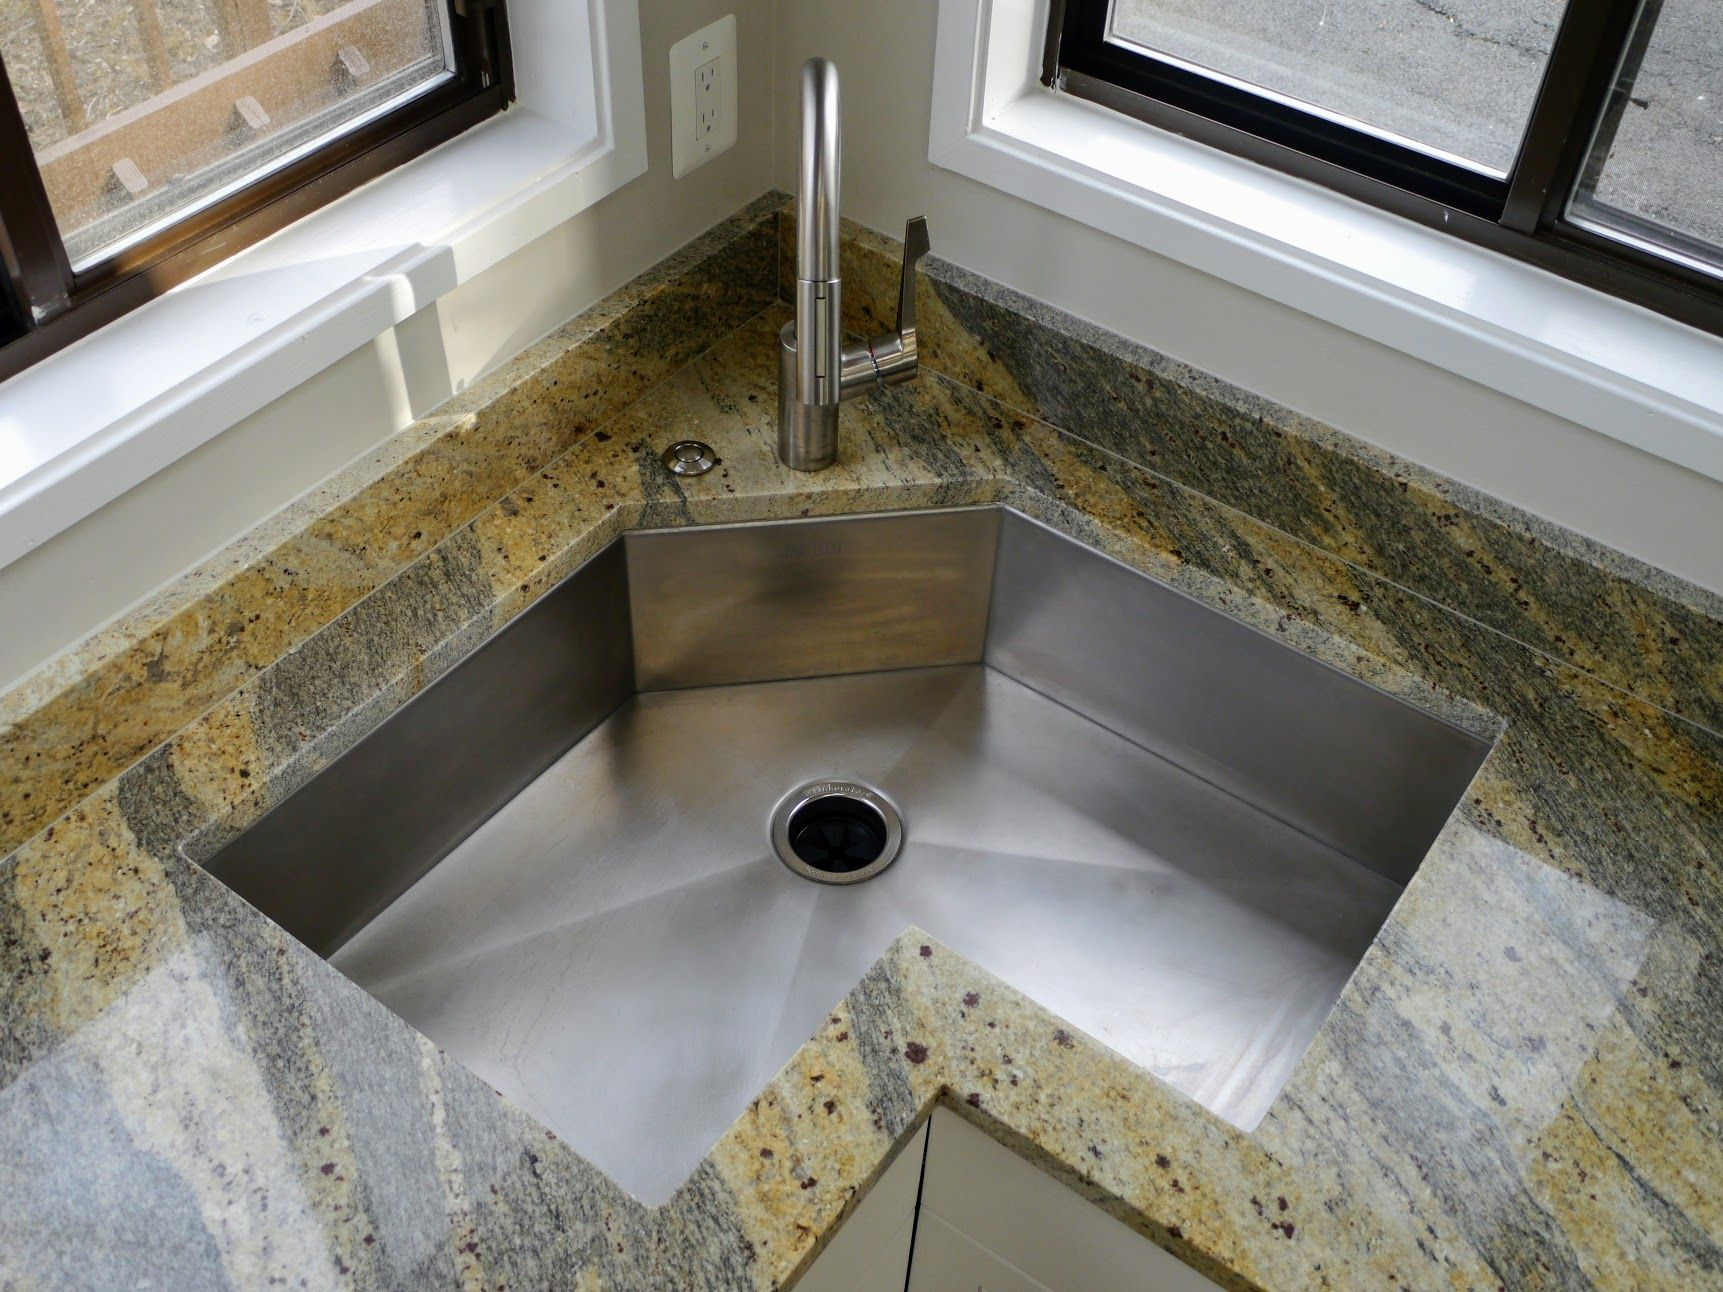 Rustic matte stainless steel under mount sink shown with a